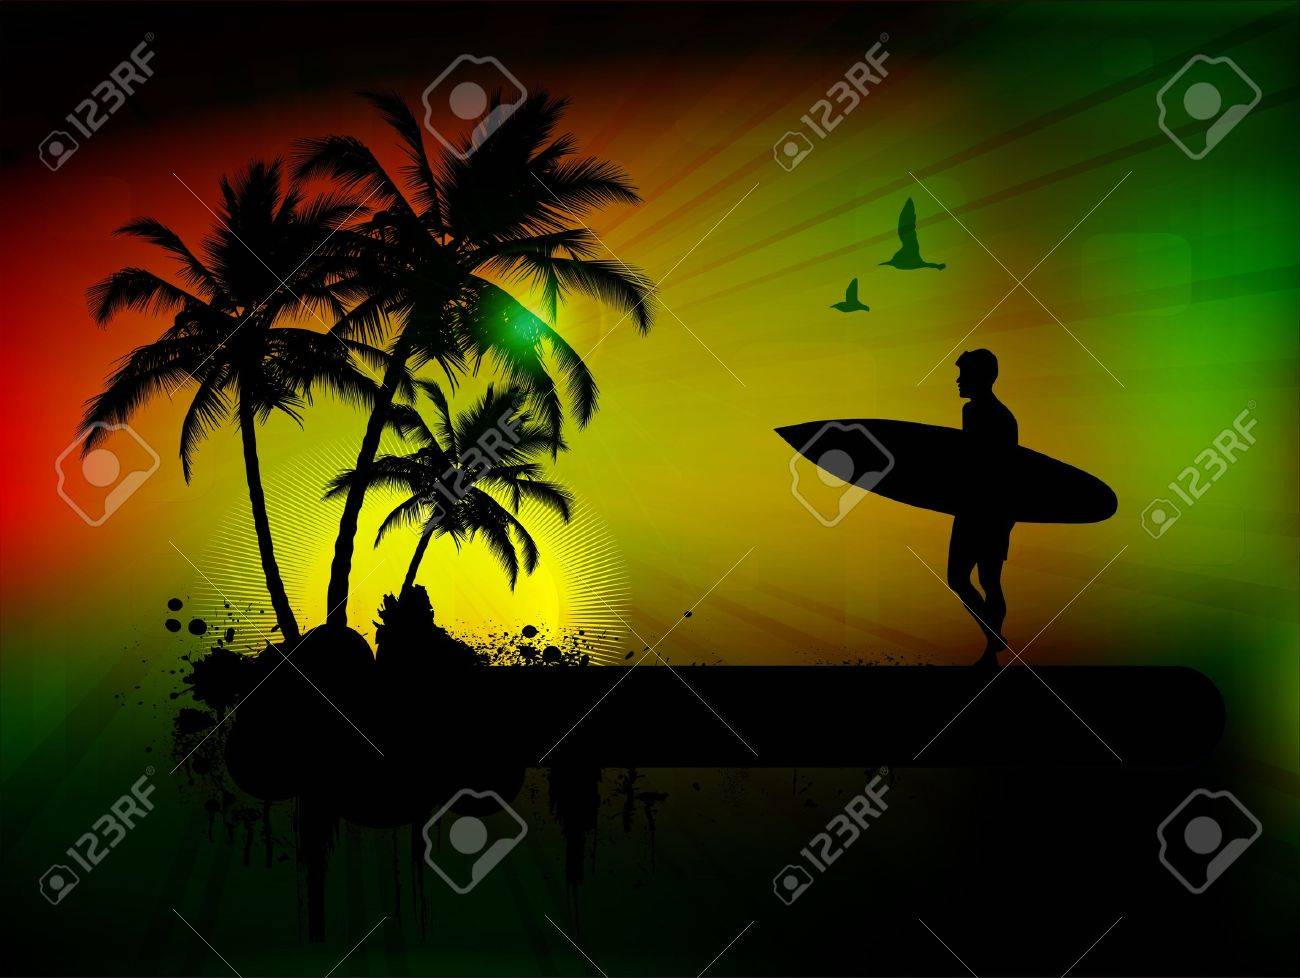 Tropical background with surfer in abstract background, vector illustration Stock Vector - 10842564